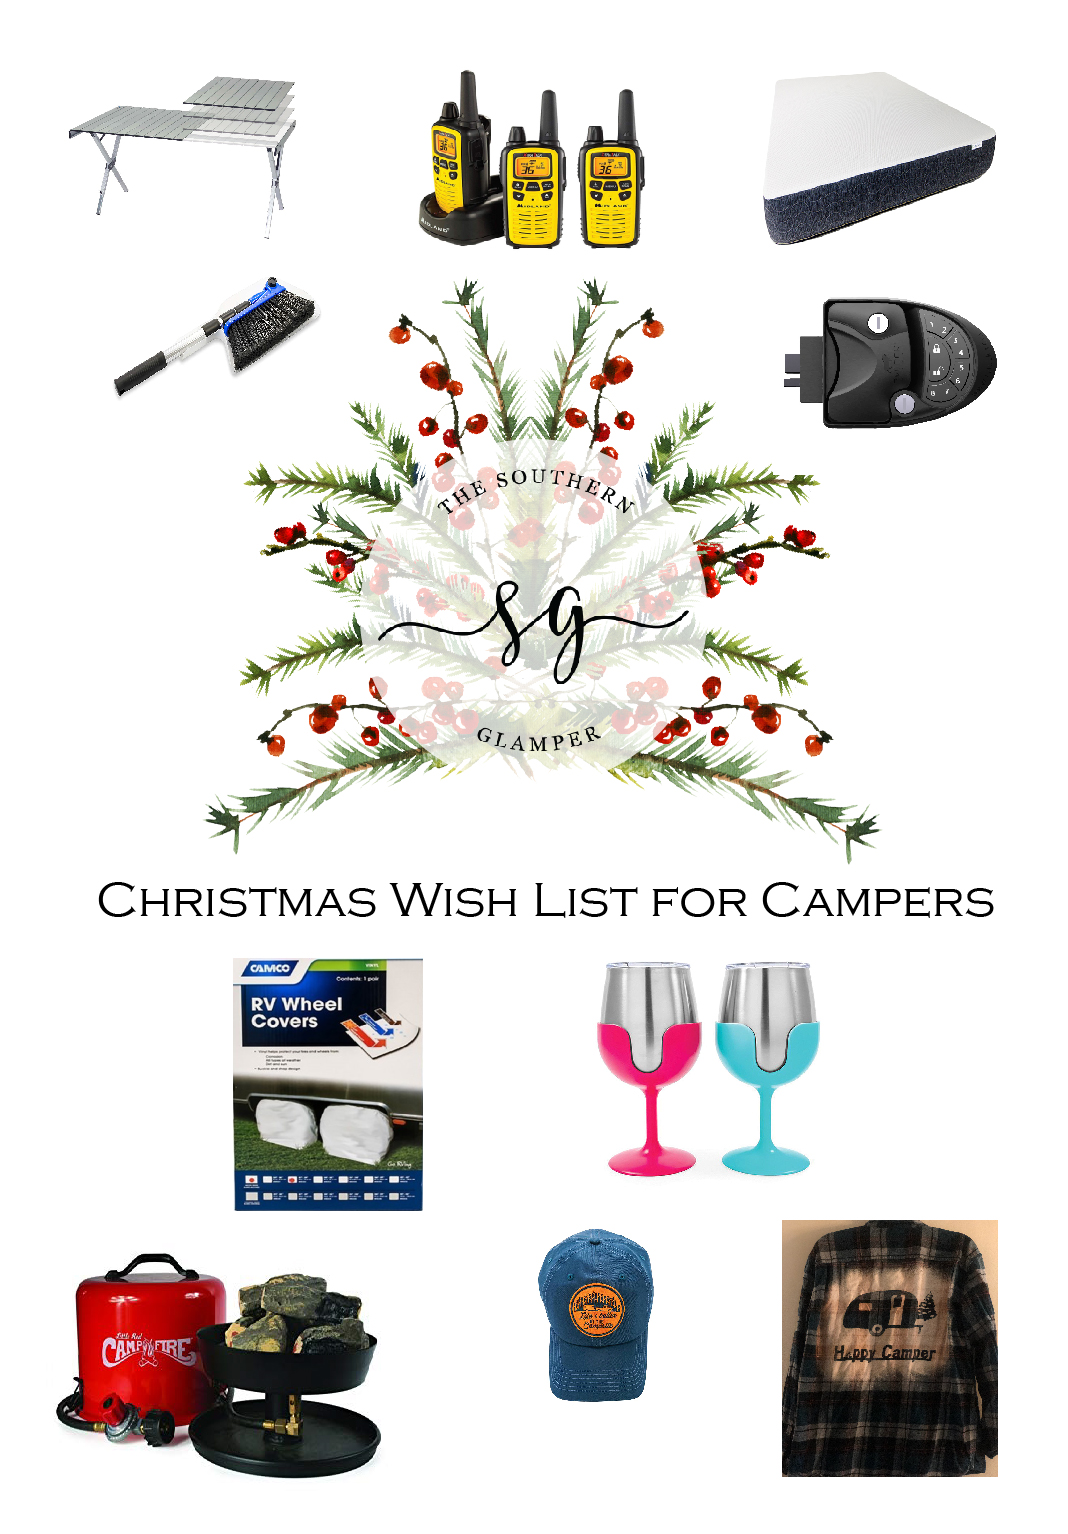 Camping gift ideas for any glamper or camper alike.